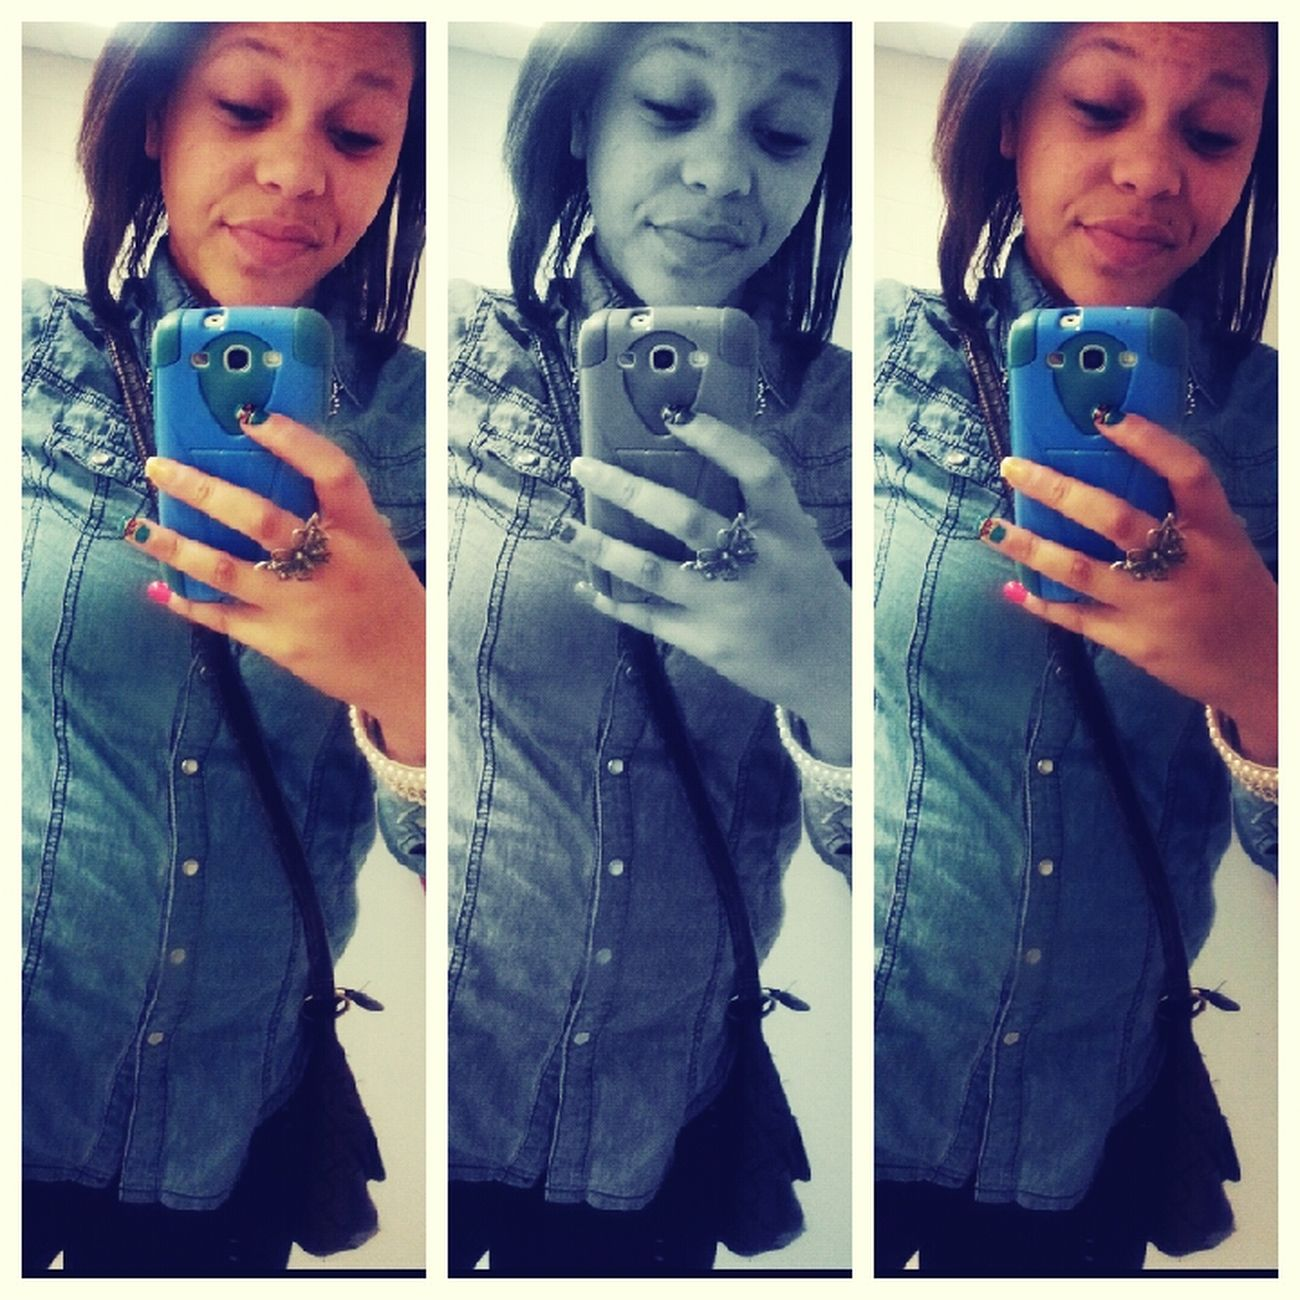 Everybody Else Basic, I Live Life On An Everyday Basis♥